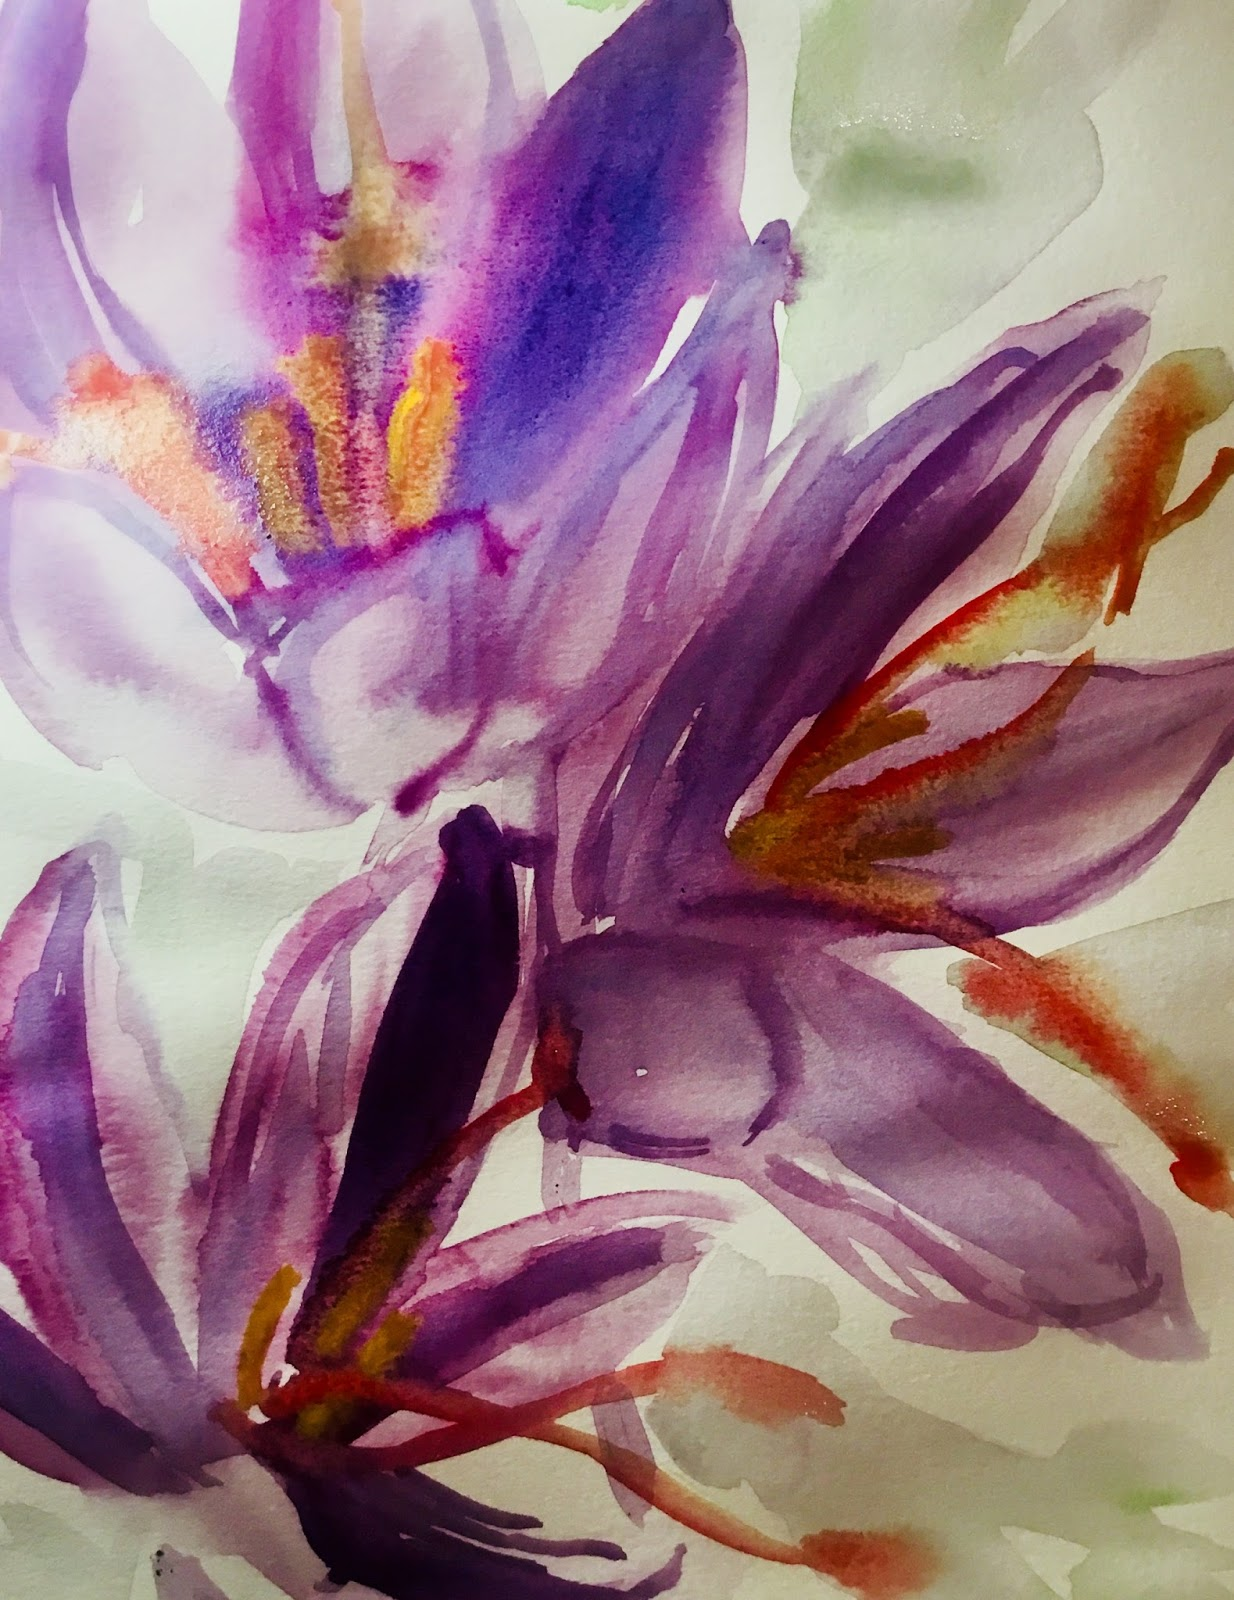 watercolour sketch of crocus flowers, used to produce saffron